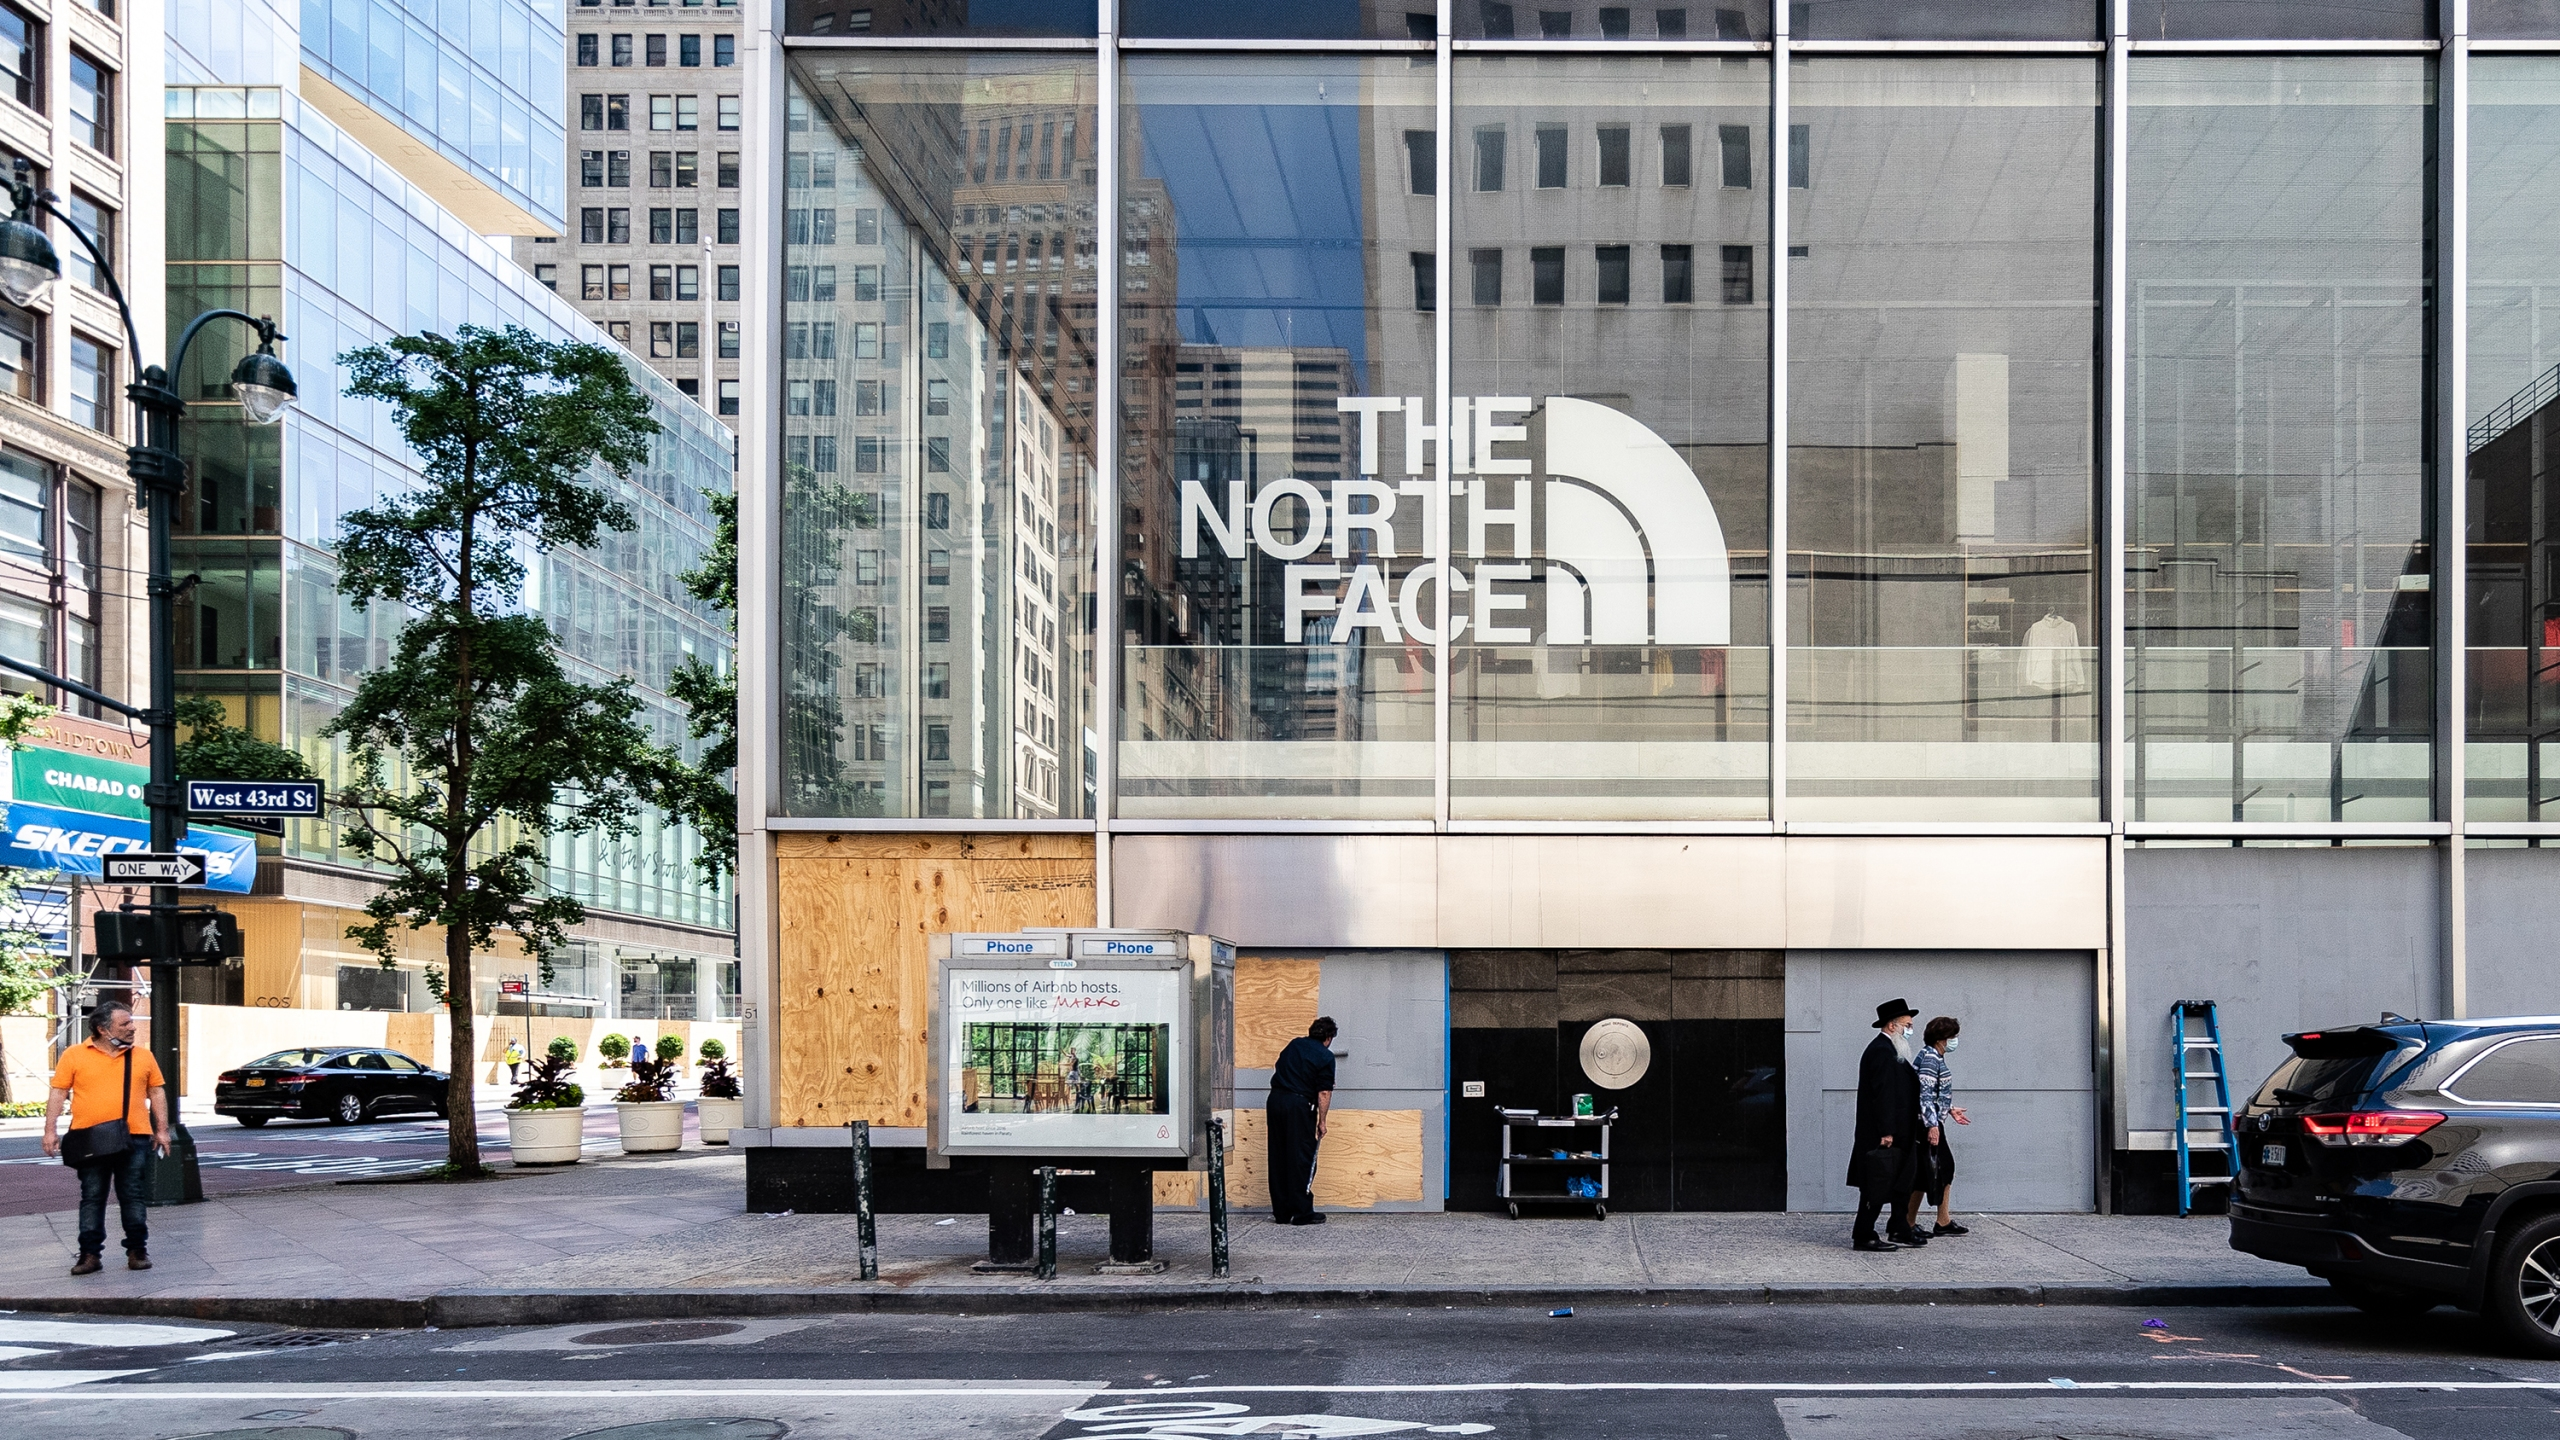 A boarded up North Face Inc. store stands in New York, U.S., on Tuesday, June 9, 2020. New York City, which experienced the biggest and deadliest Covid-19 outbreakin the country, beganreopeningon June 8. (Jeenah Moon/Bloomberg via Getty Images)